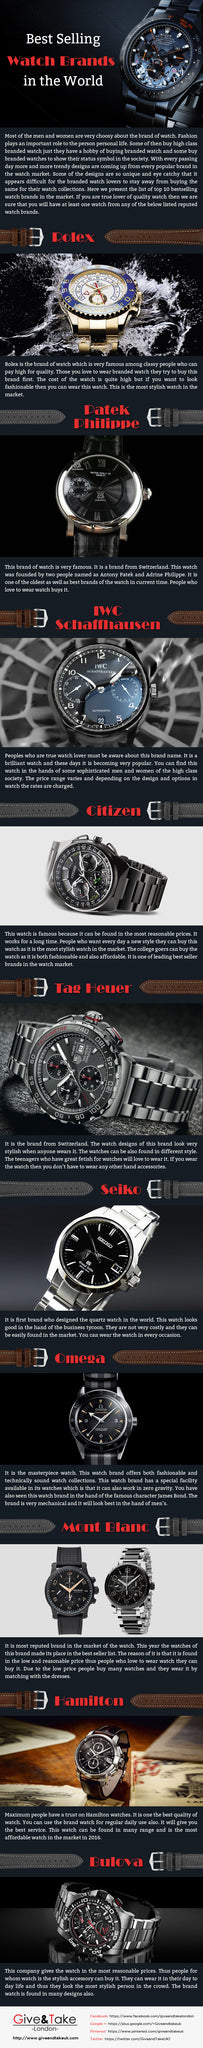 best selling watch brands in the world infographic